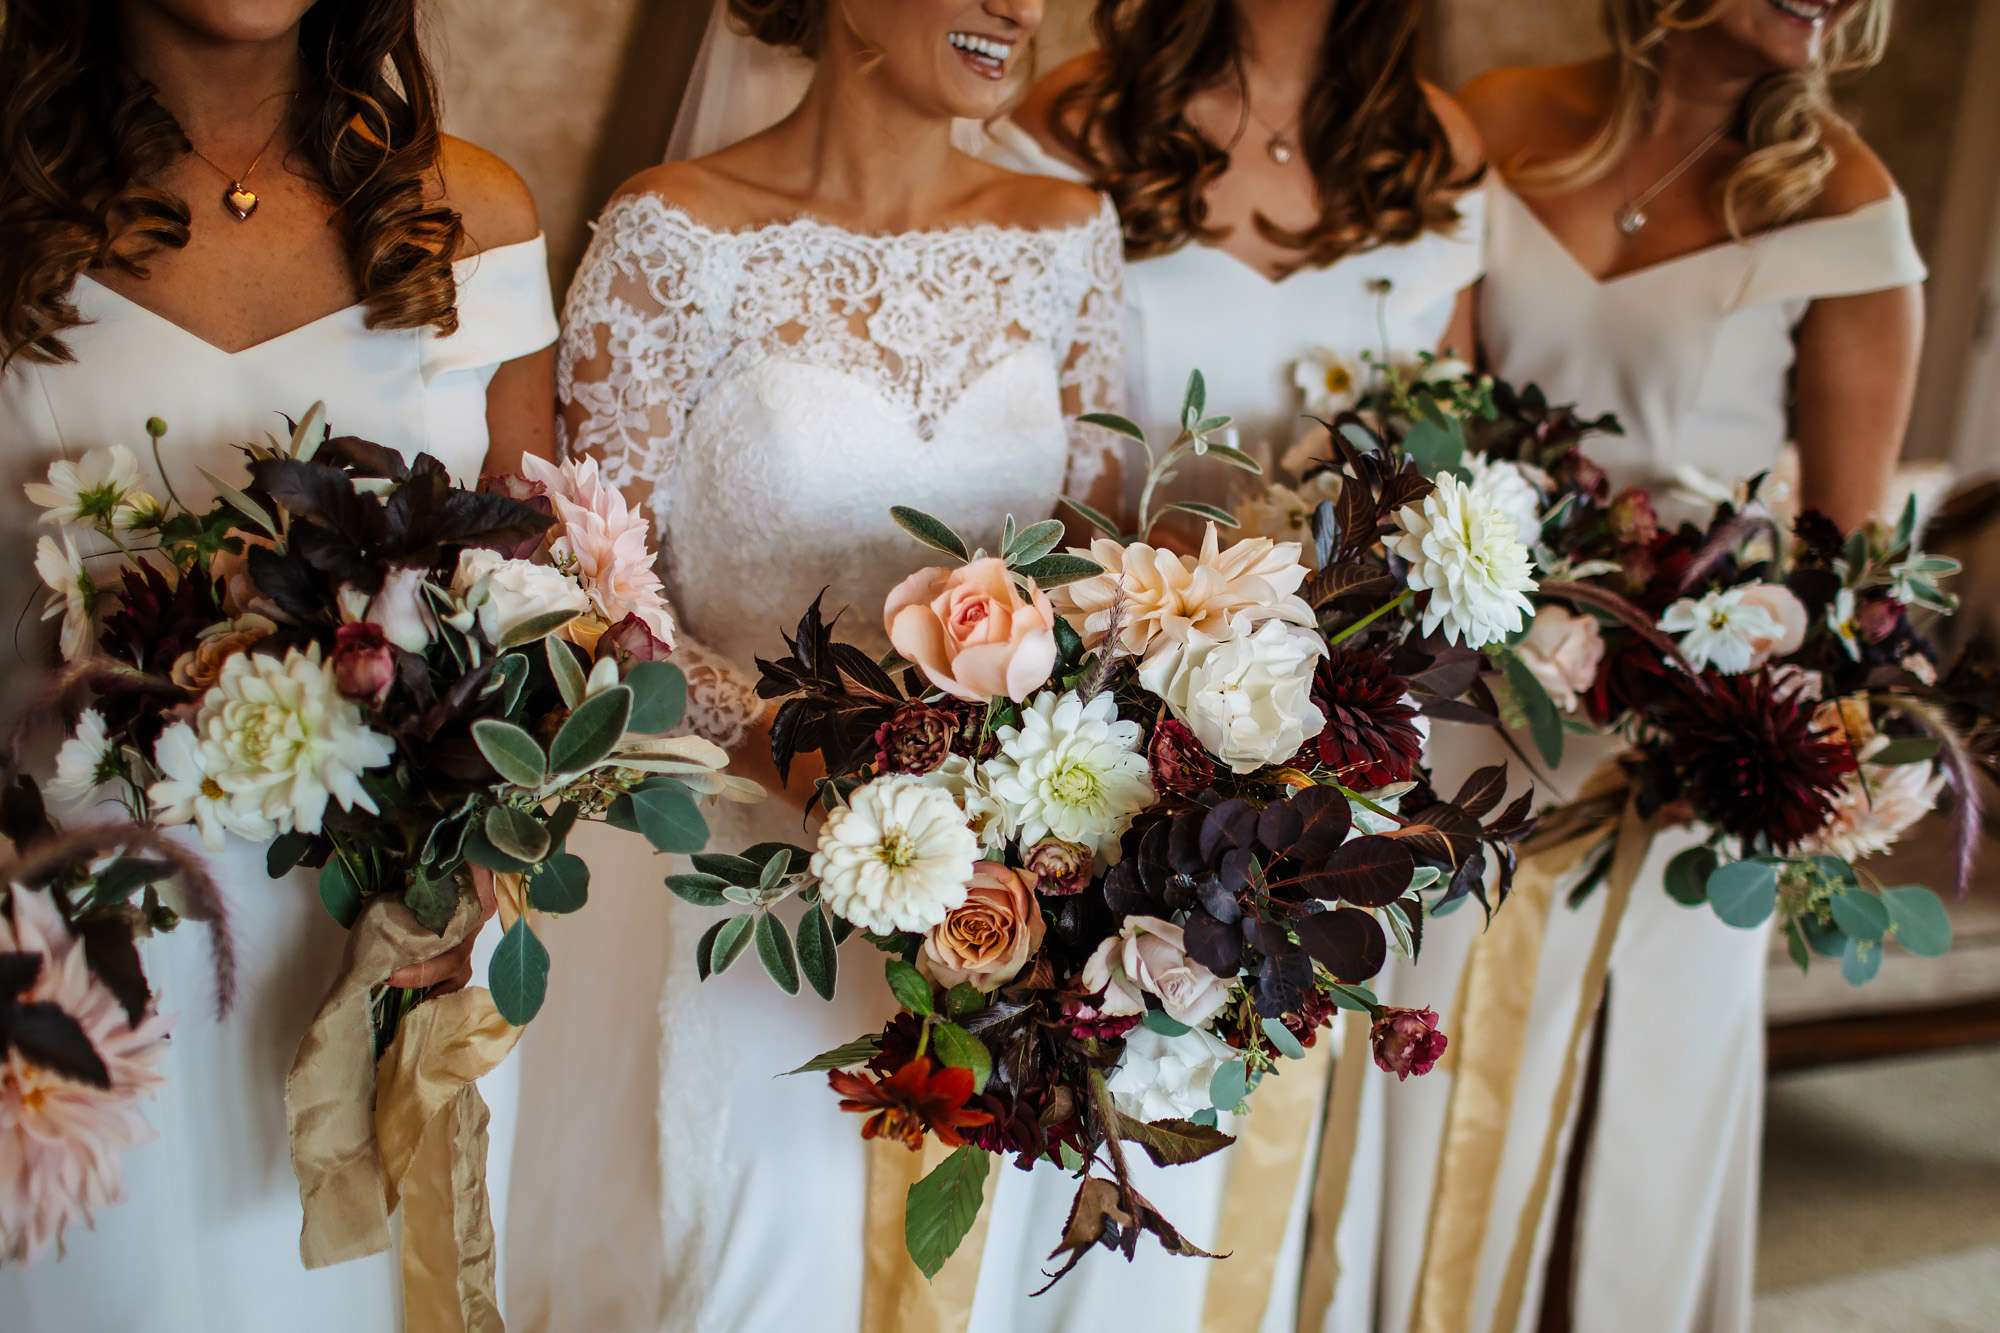 Bridesmaids with their flowers at a wedding